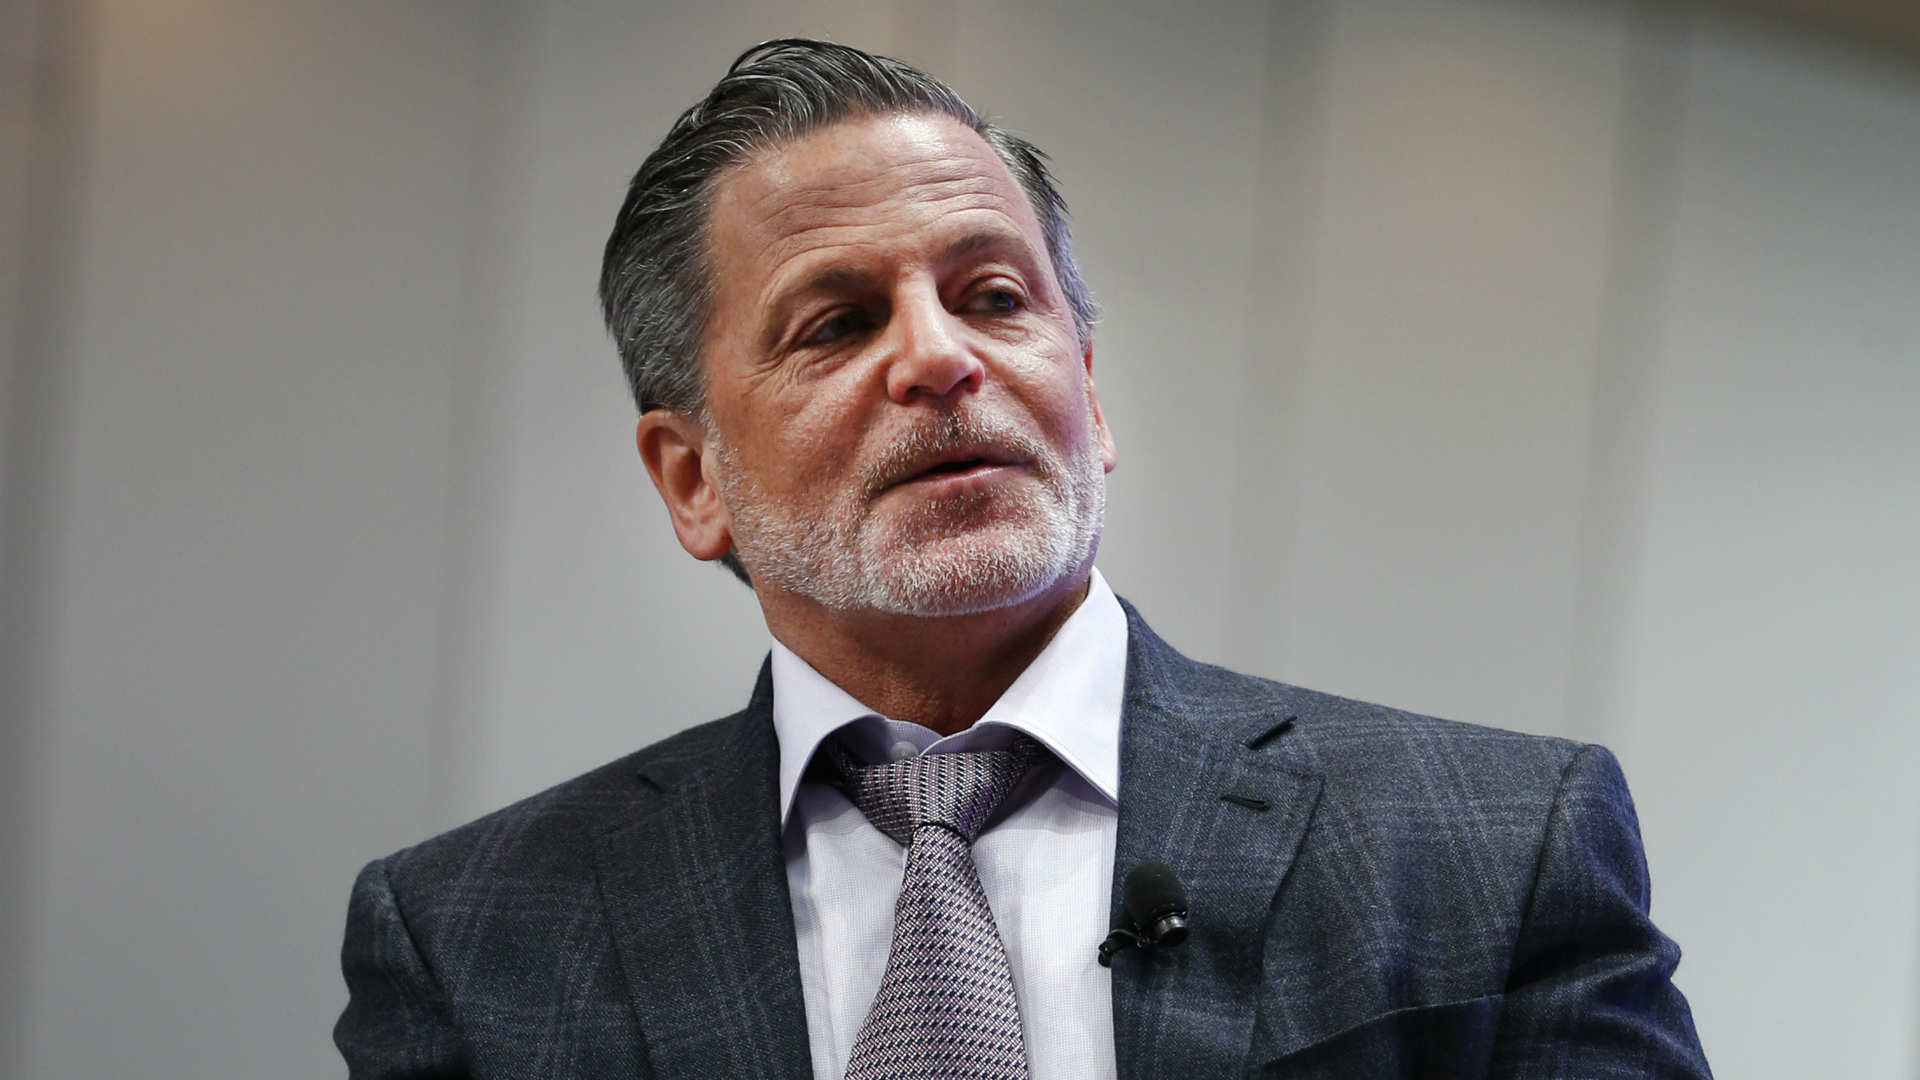 Cavaliers visit owner Dan Gilbert at Detroit home after stroke